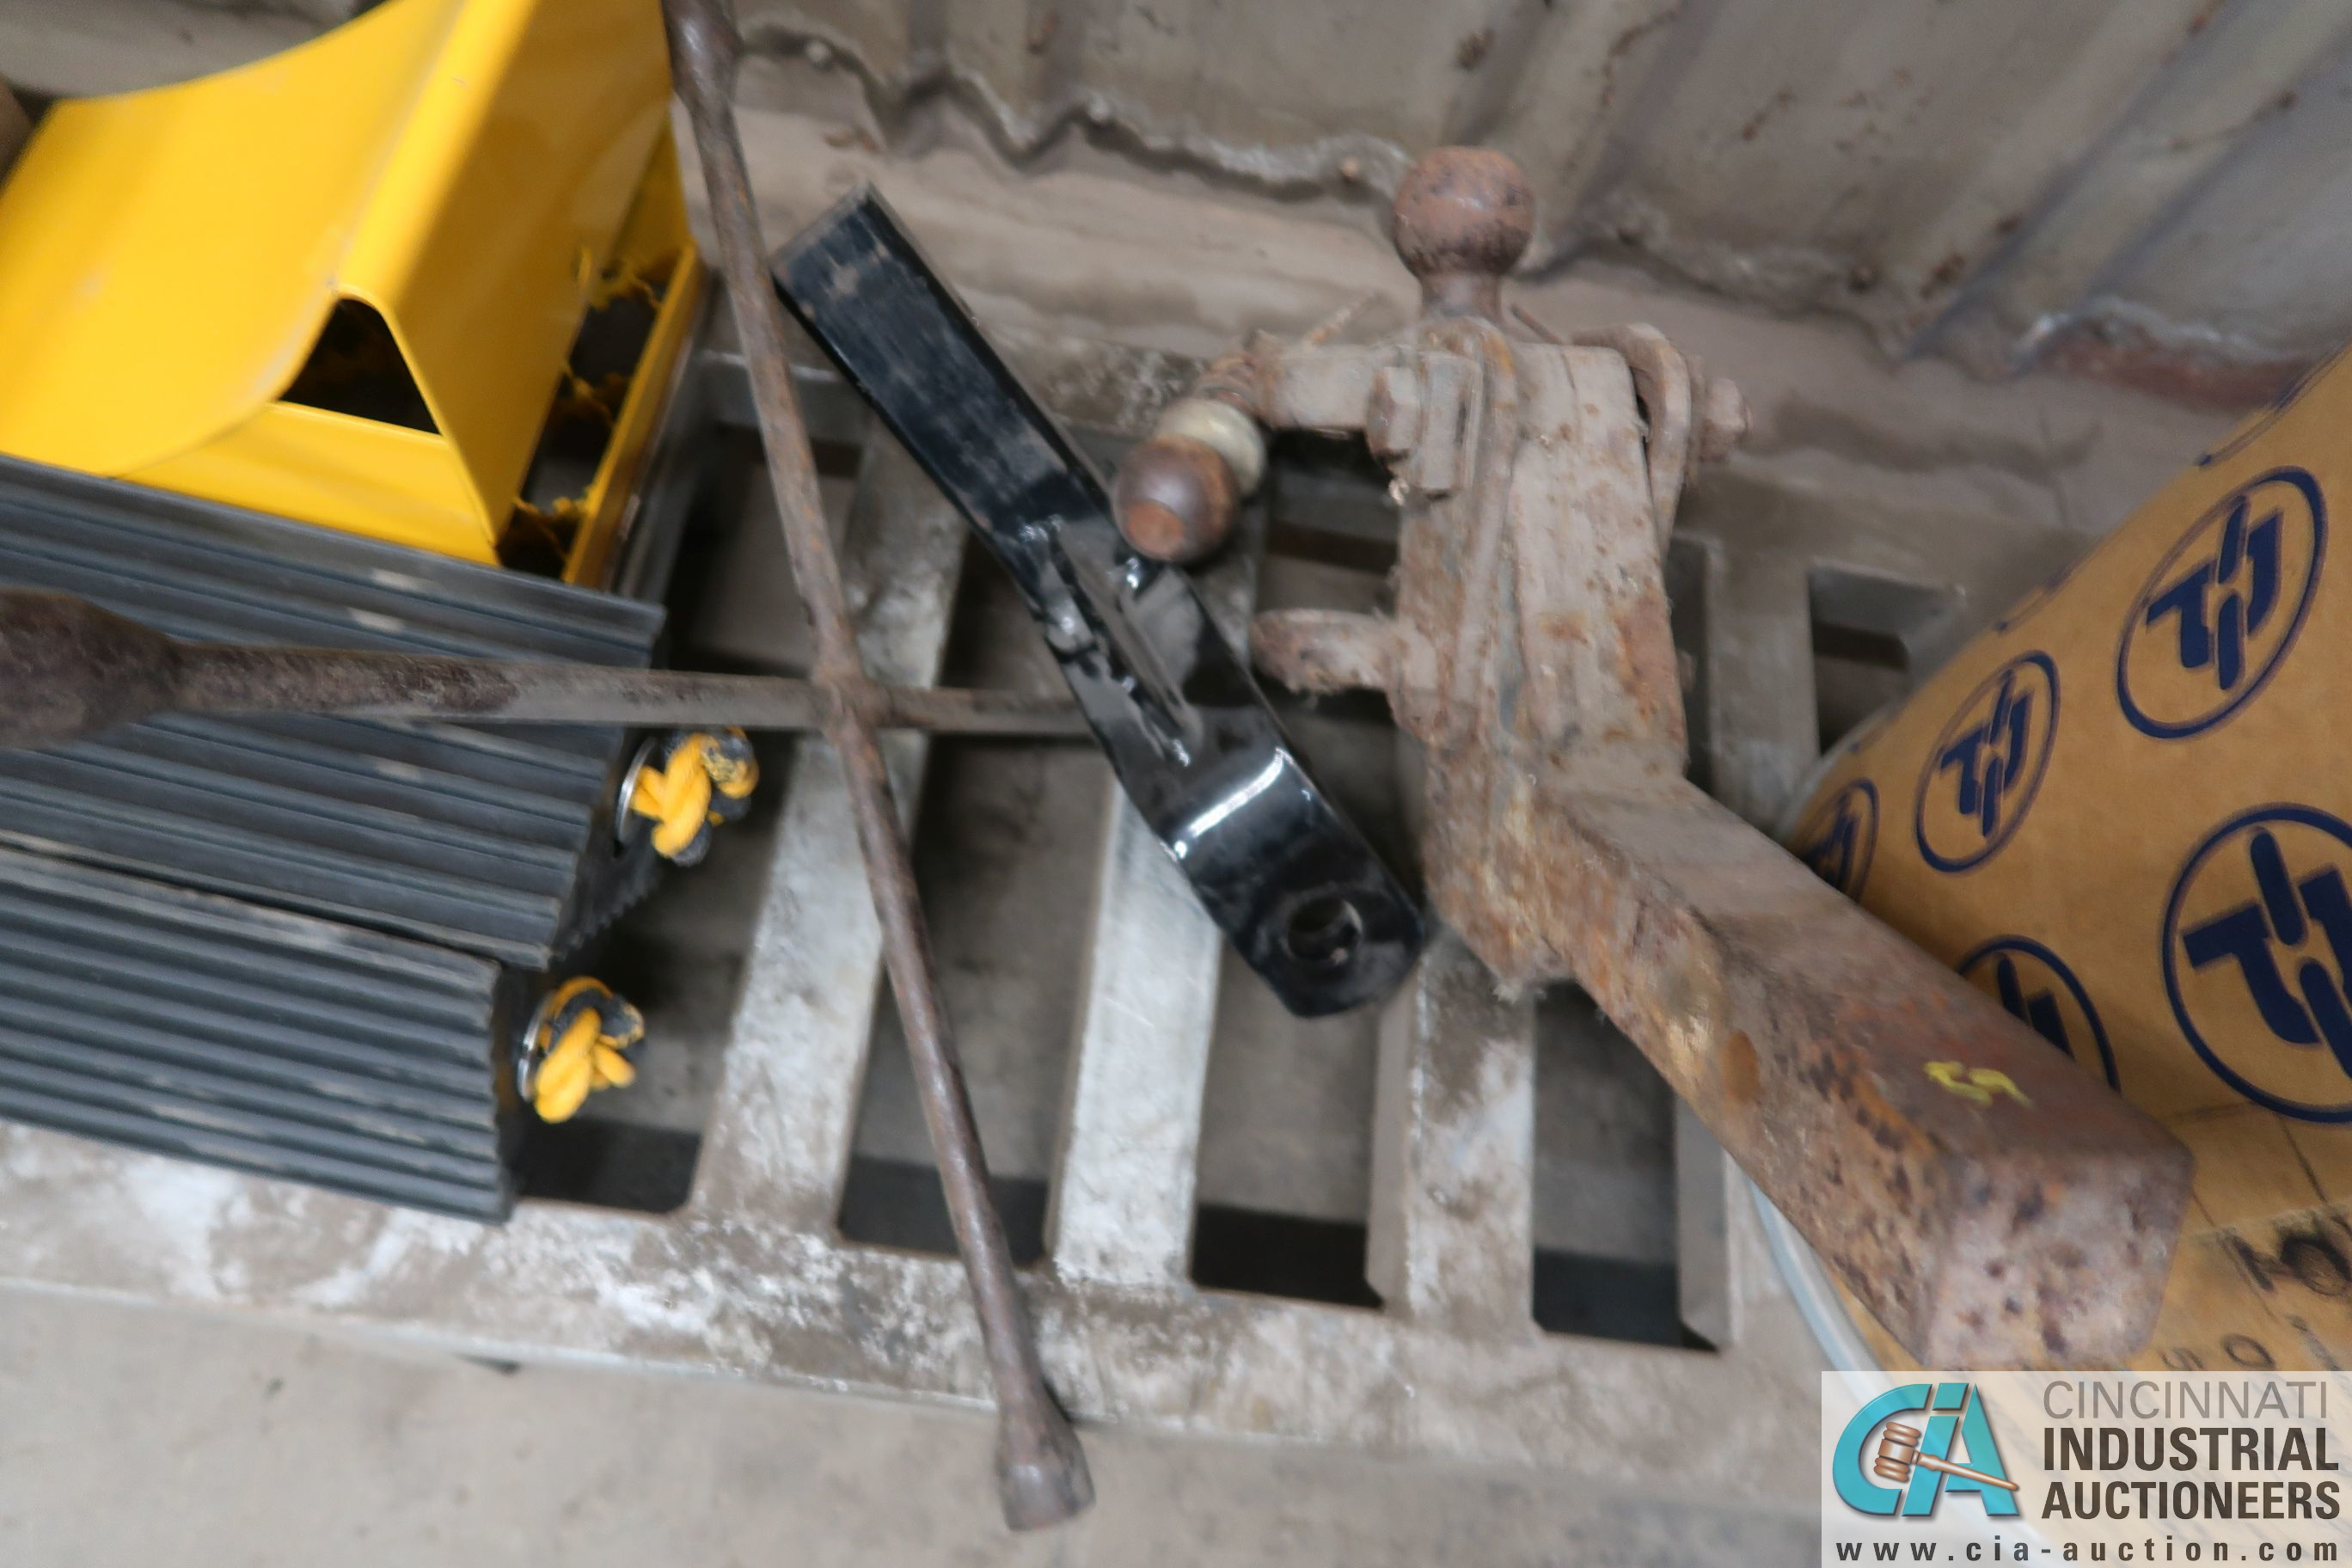 (LOT) MISC. TIRE CHUCKS, CHAINS, HITCHES, WHEELS - Image 4 of 5